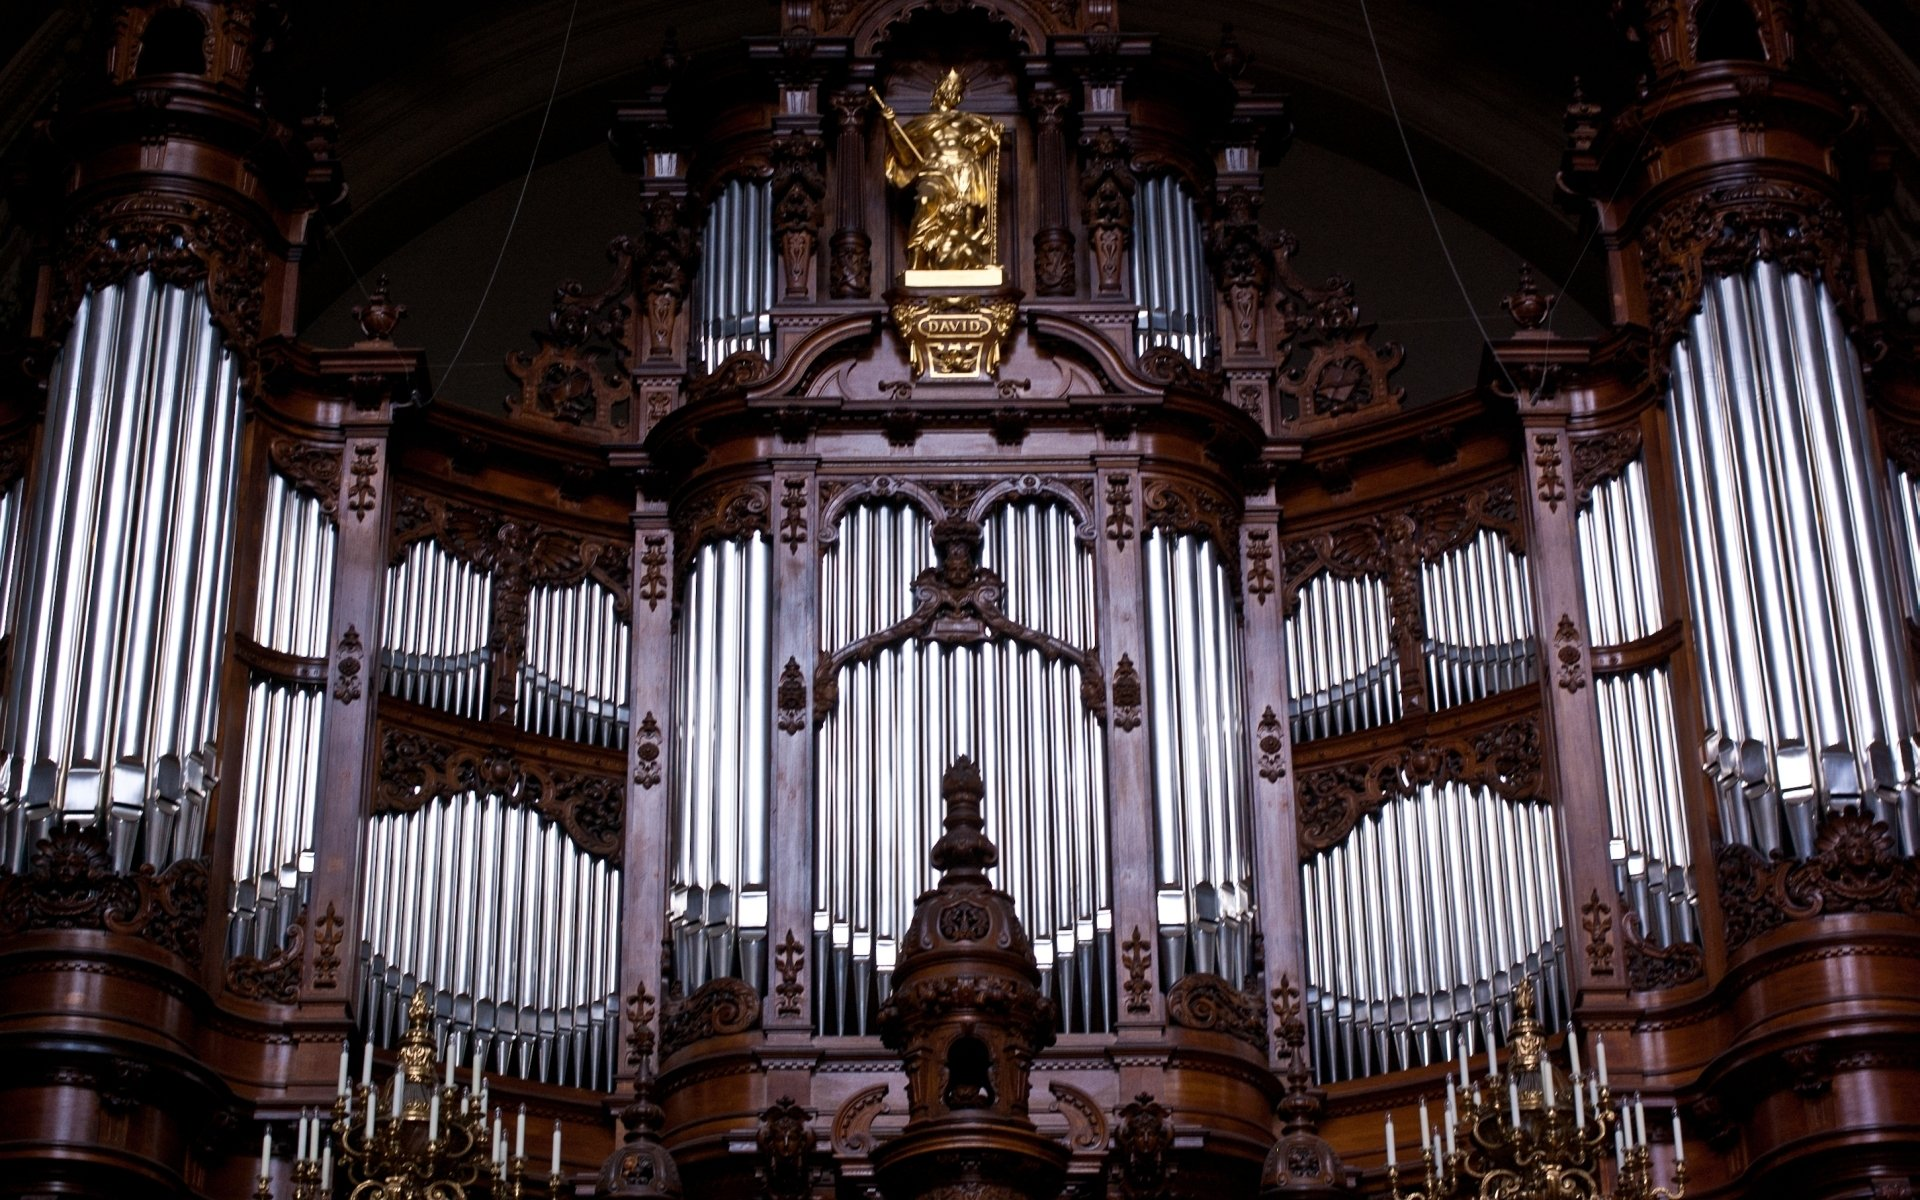 Berlin Cathedral Organ HD Wallpaper   Background Image   20x20